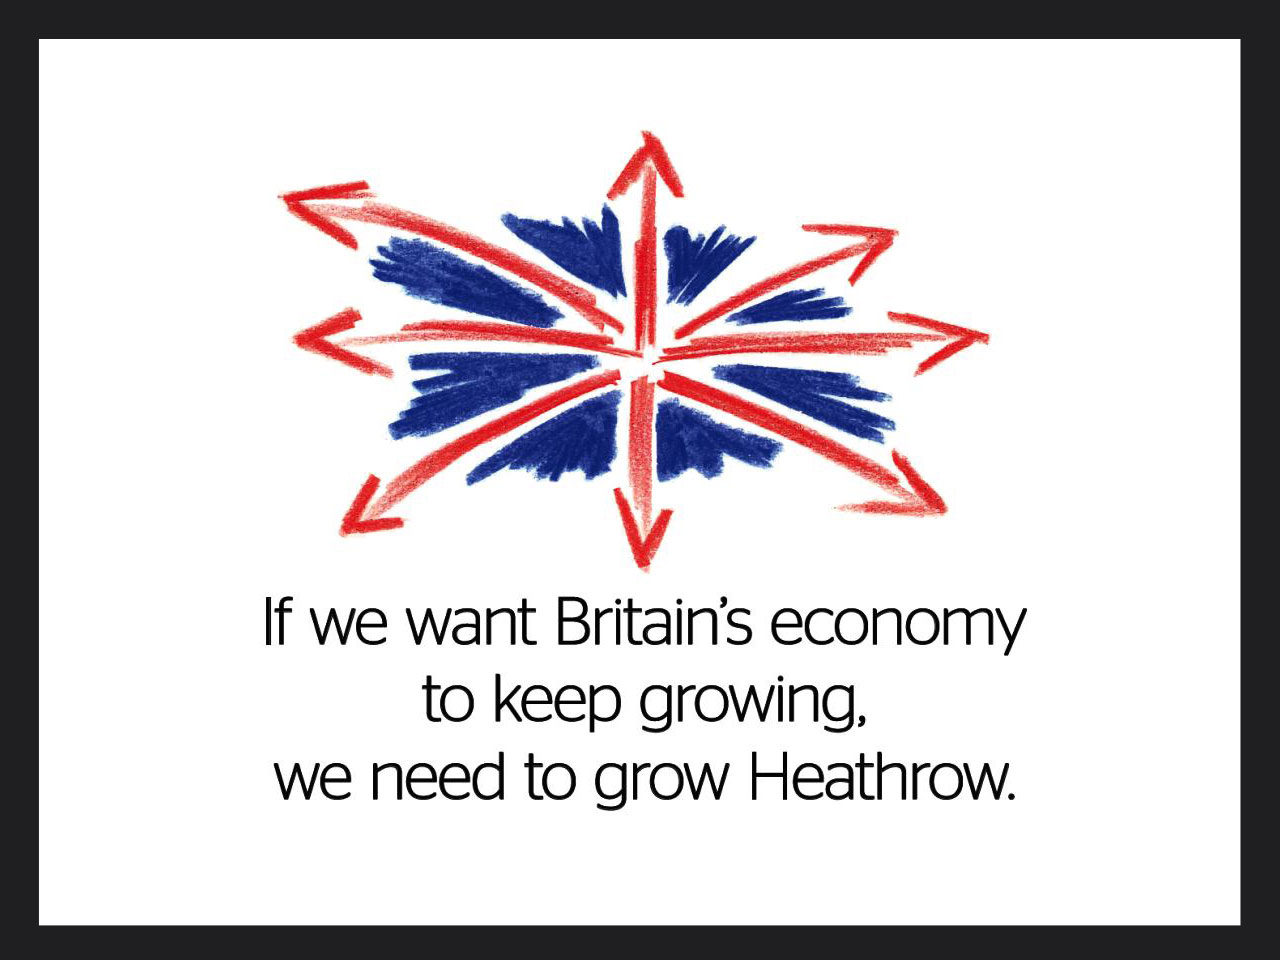 Advert for Heathrow Airport expansion campaign